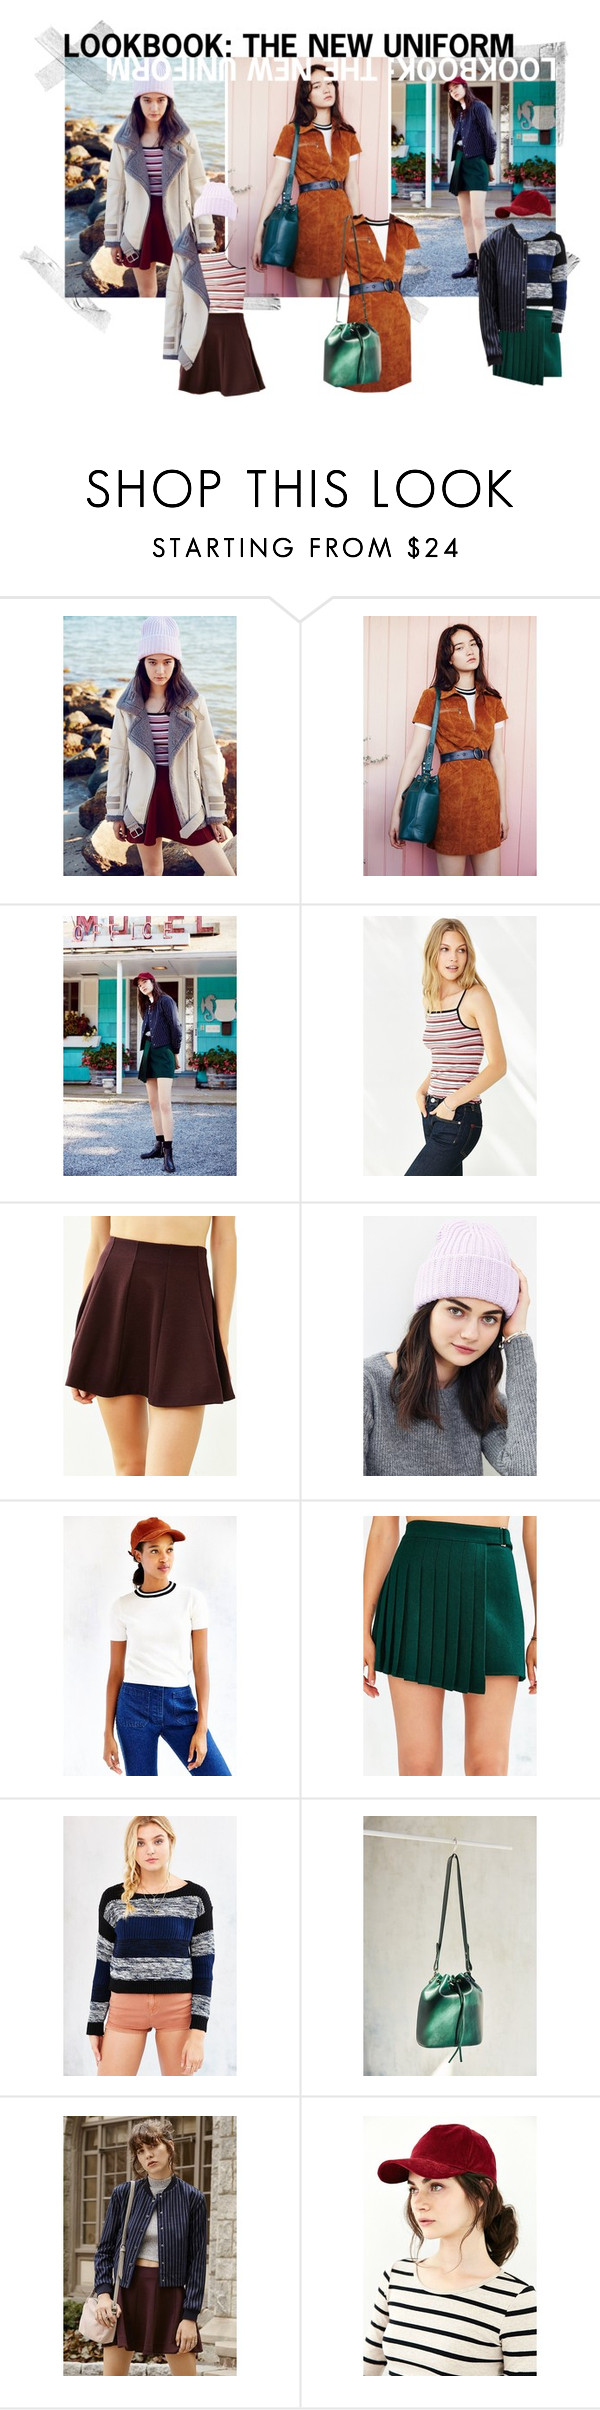 """Lookbook: The New Uniform"" by urbanoutfitters ❤ liked on Polyvore featuring J.O.A., Ecote, Kimchi Blue, Urban Outfitters, Glamorous, BDG, Cooperative and Silence + Noise"